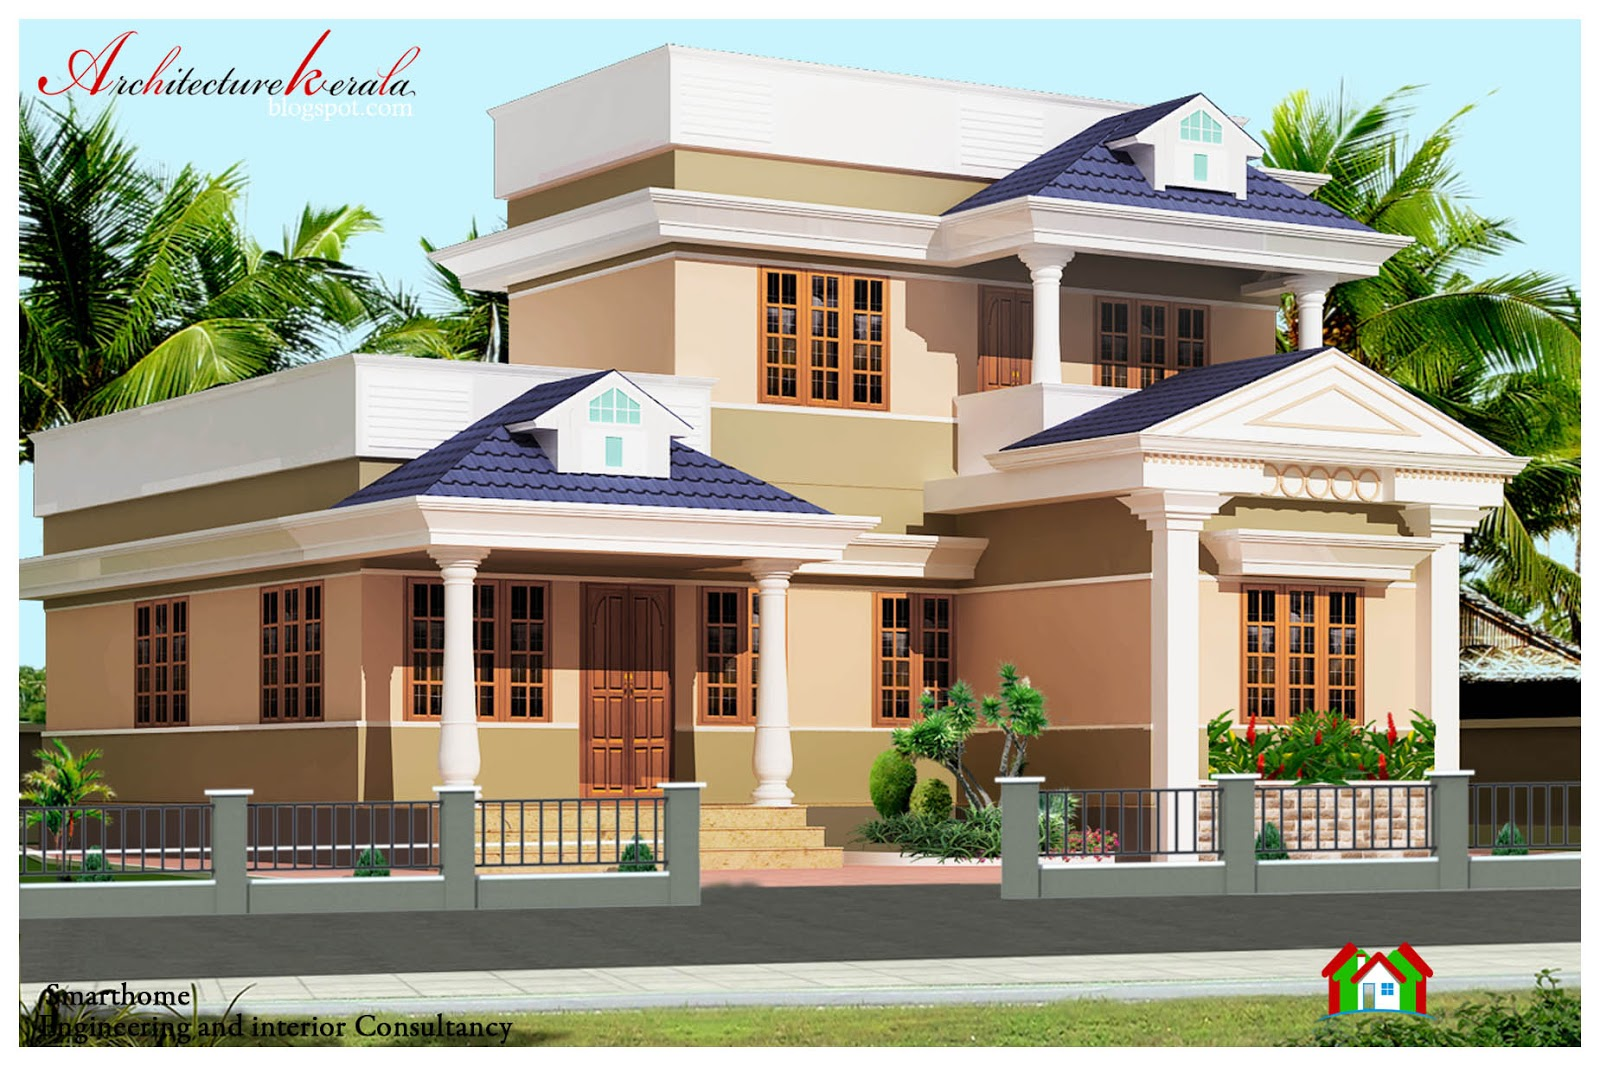 Architecture kerala 1000 sq ft kerala style house plan for House plans with photos in kerala style